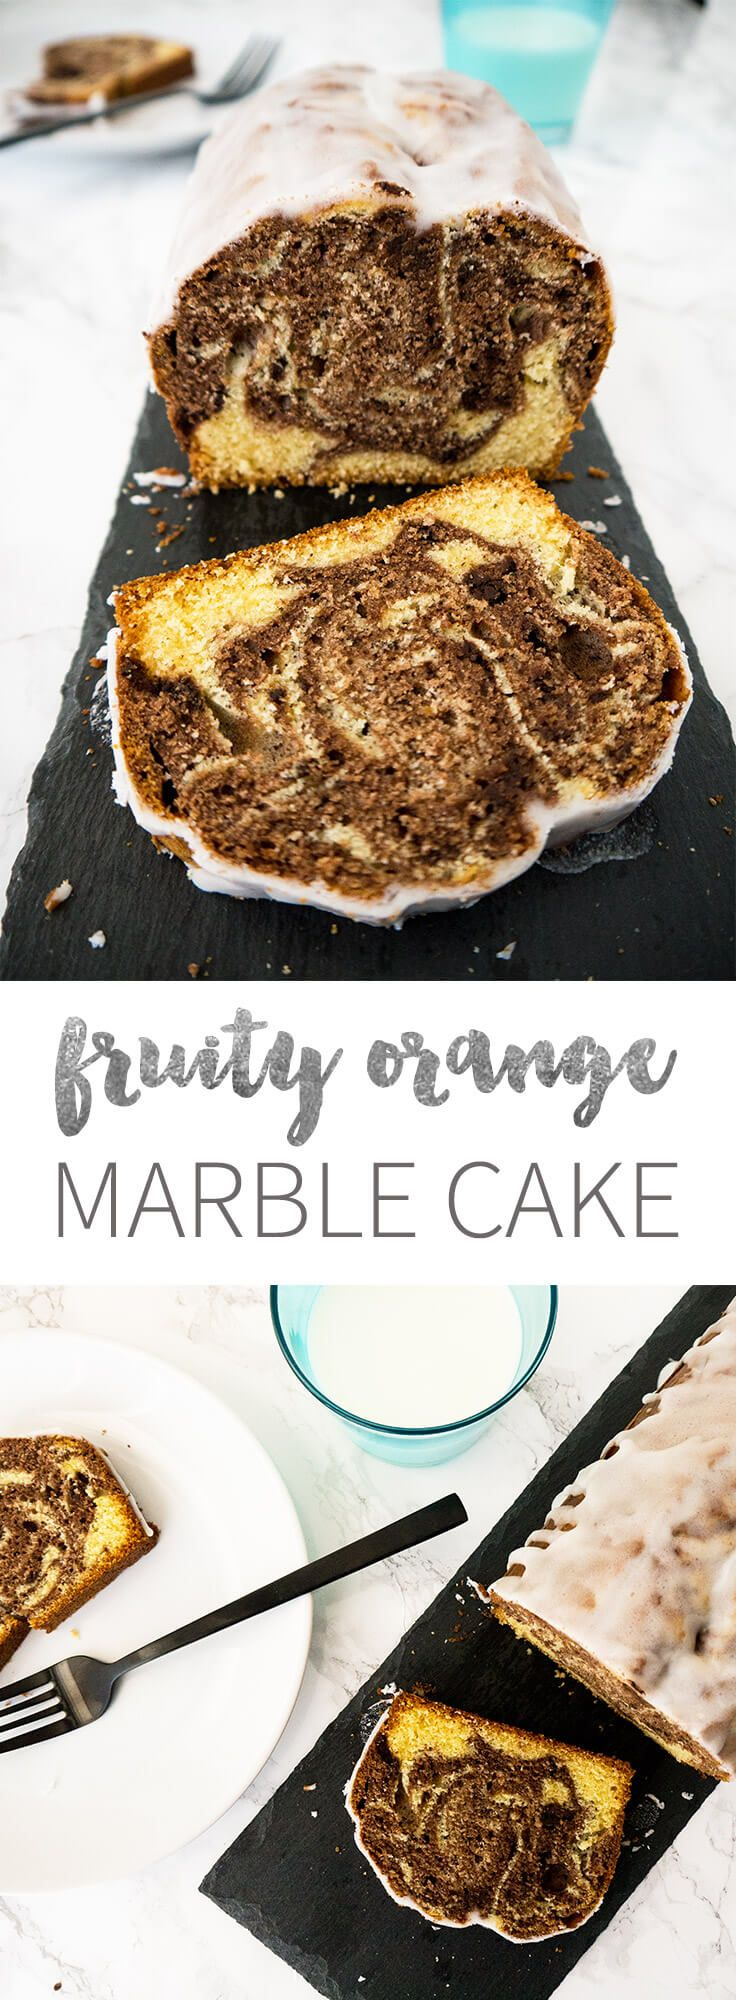 ... on Pinterest | Sour cream pound cake, Chocolate cakes and Cheesecake